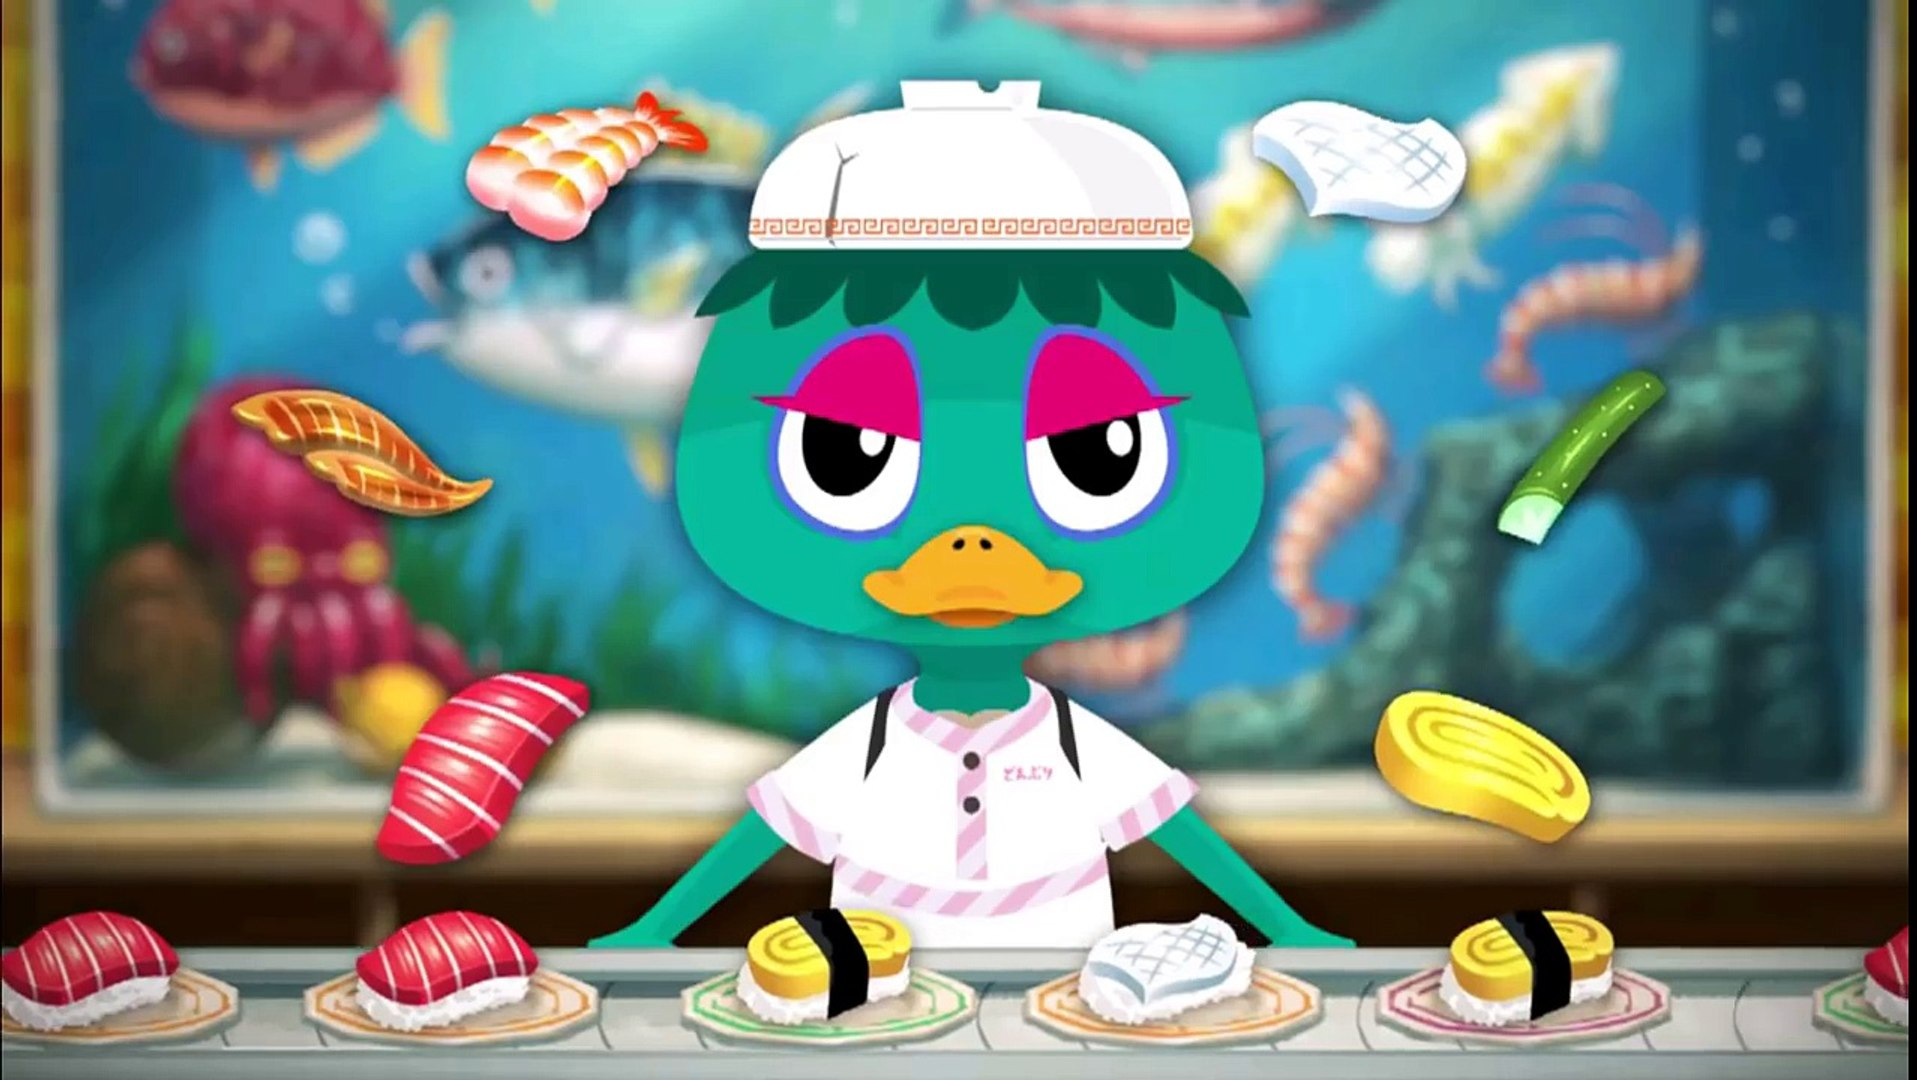 Play Fun for Kids | Make Yummy Foods Children - Kids games to play Cooking Kids Games